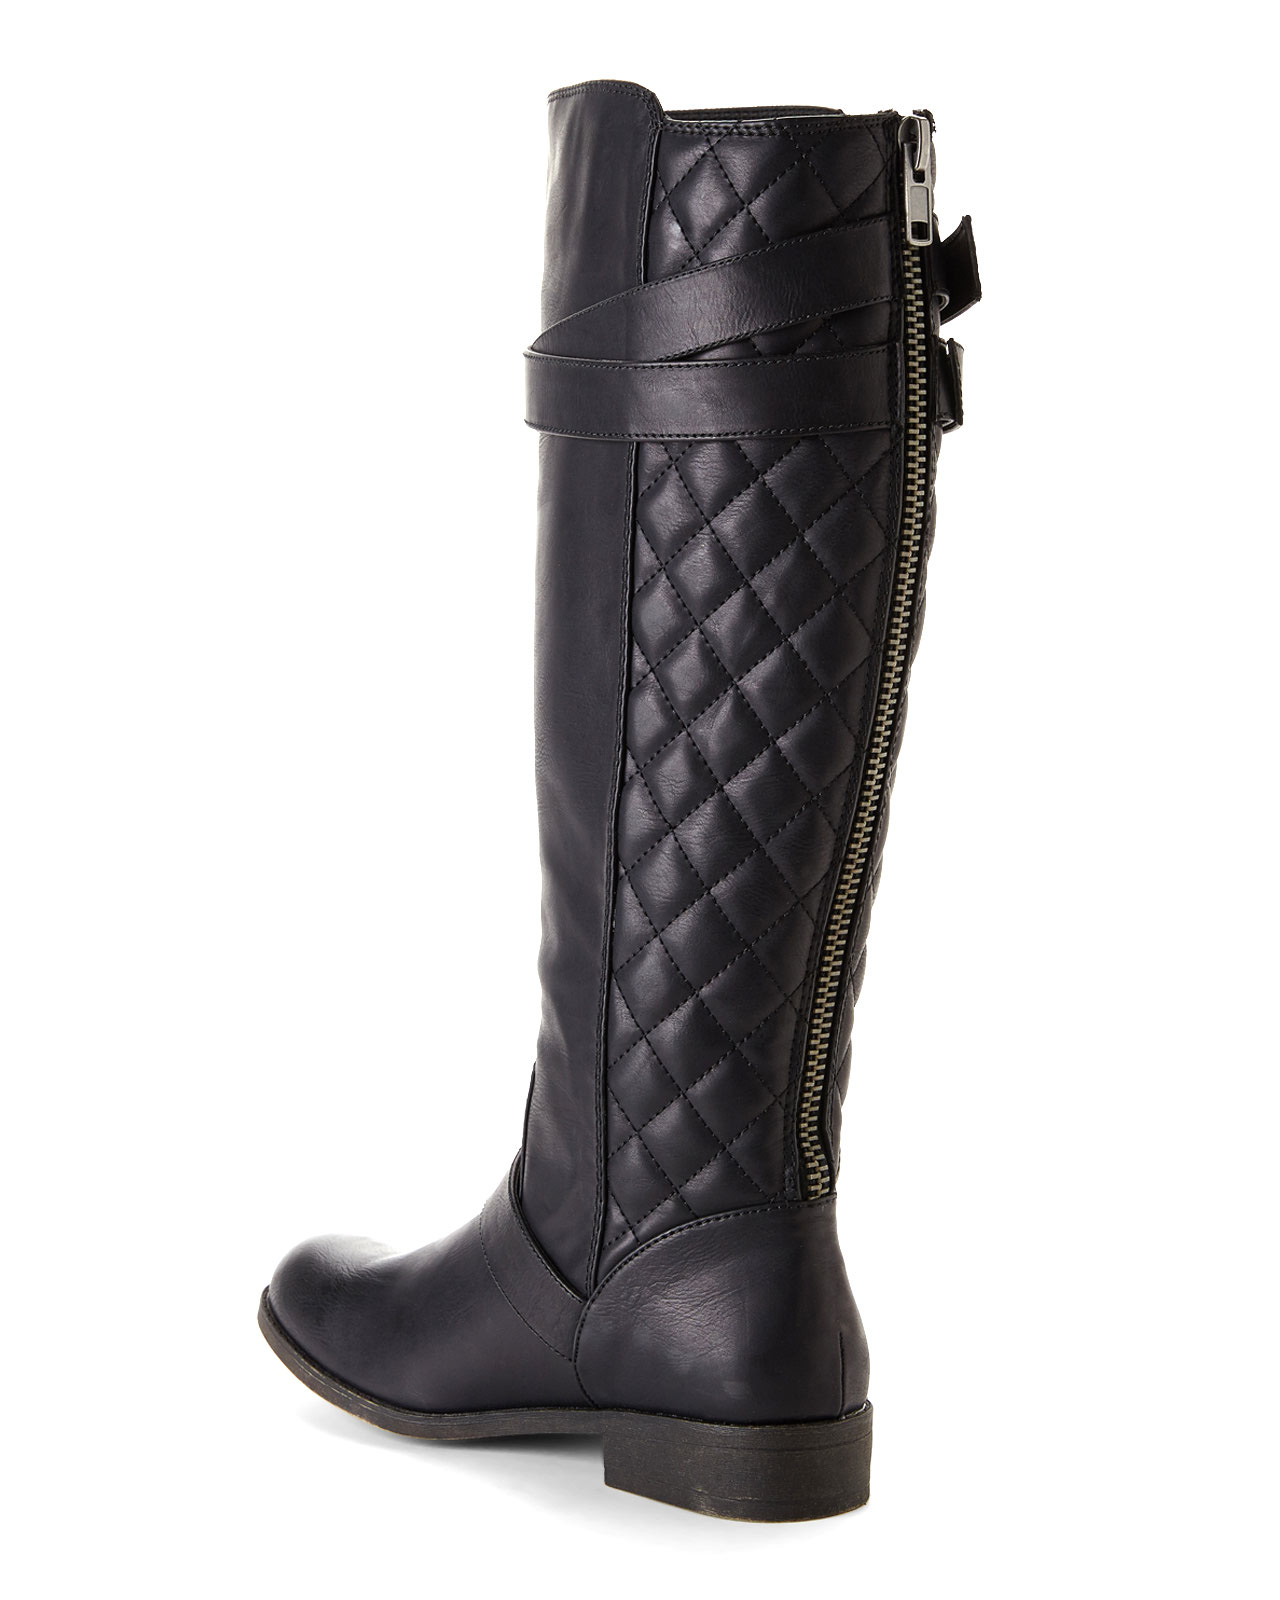 boots black herstyle quilted quilt over zipper buckle neekkaa riding knee